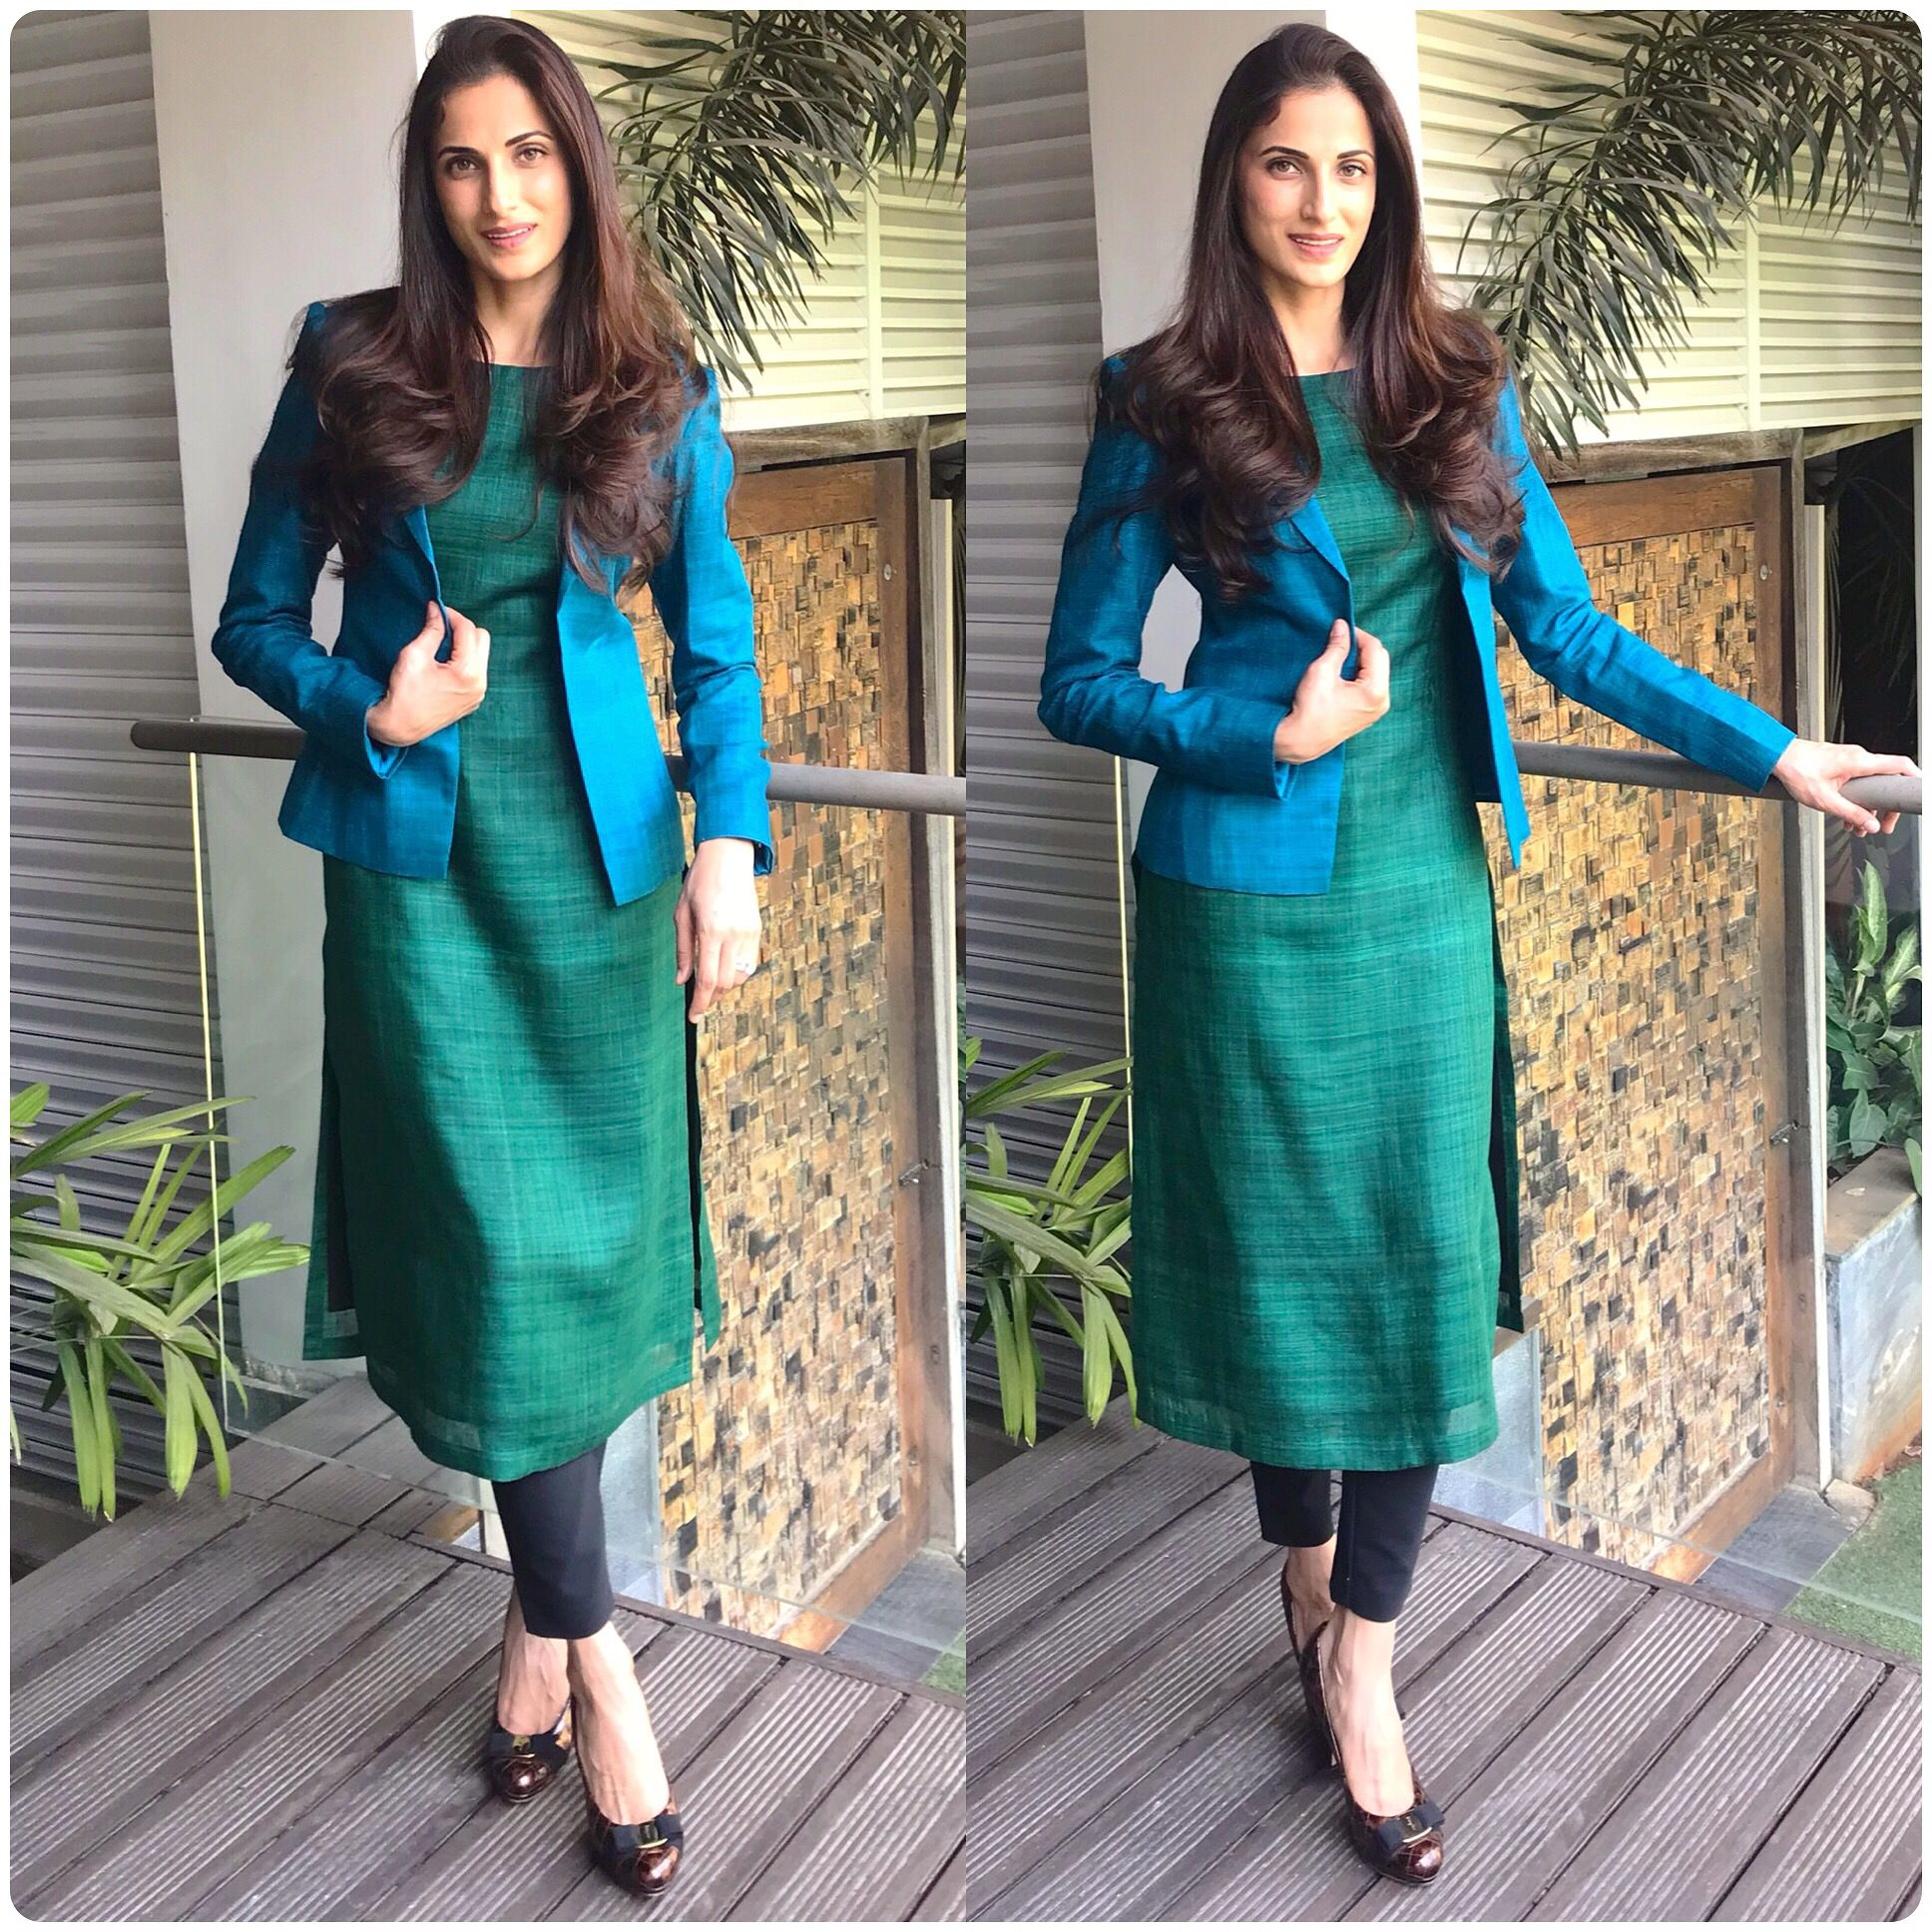 Ladies jacket suits | kurta | Dresses, Kurti, Indian ...